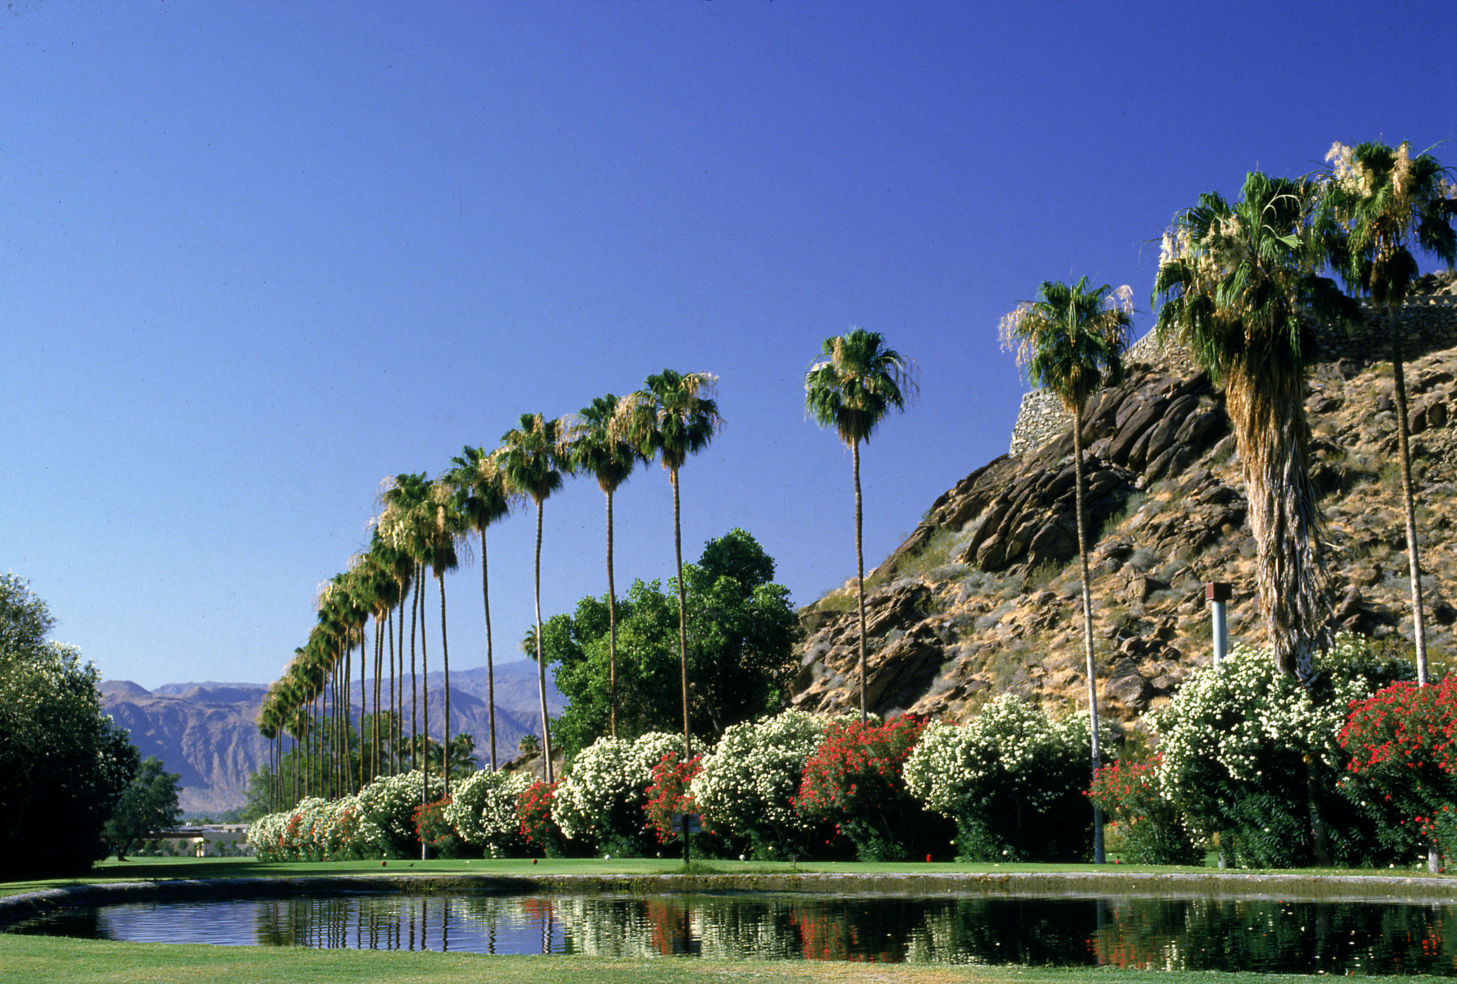 A view of Palm Springs, California